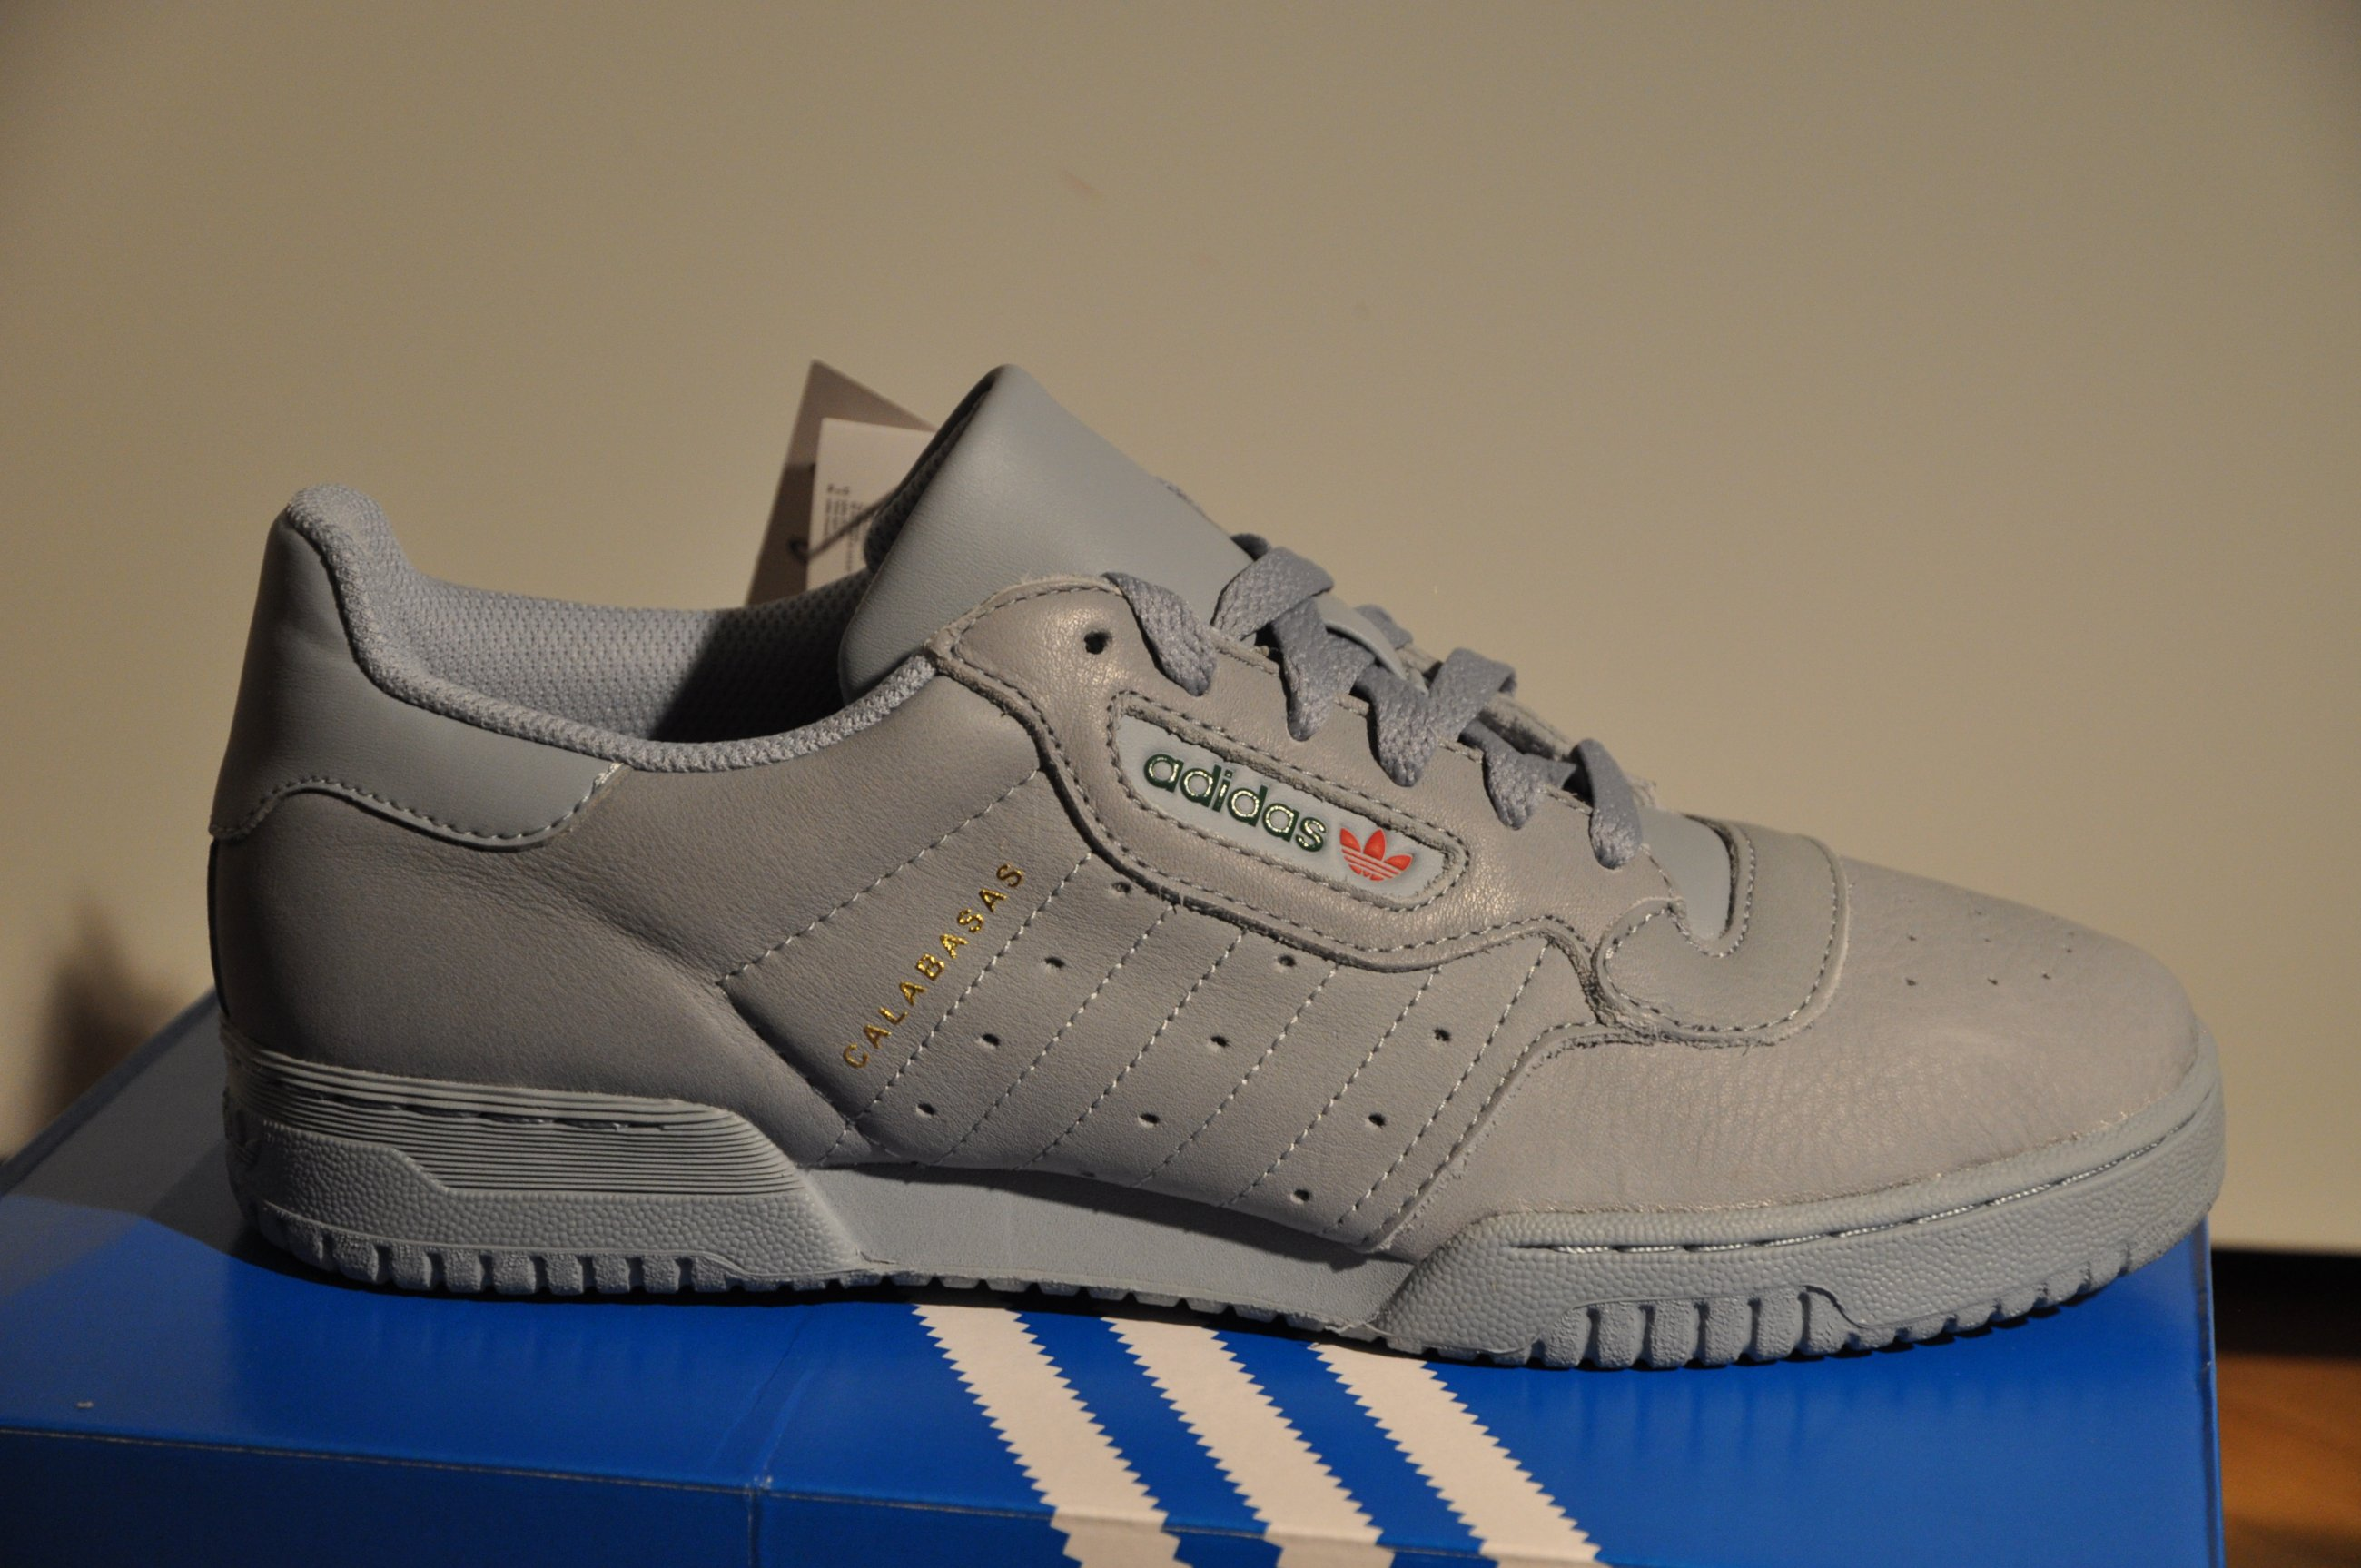 separation shoes 2f080 810fe Yeezy powerphase calabasas